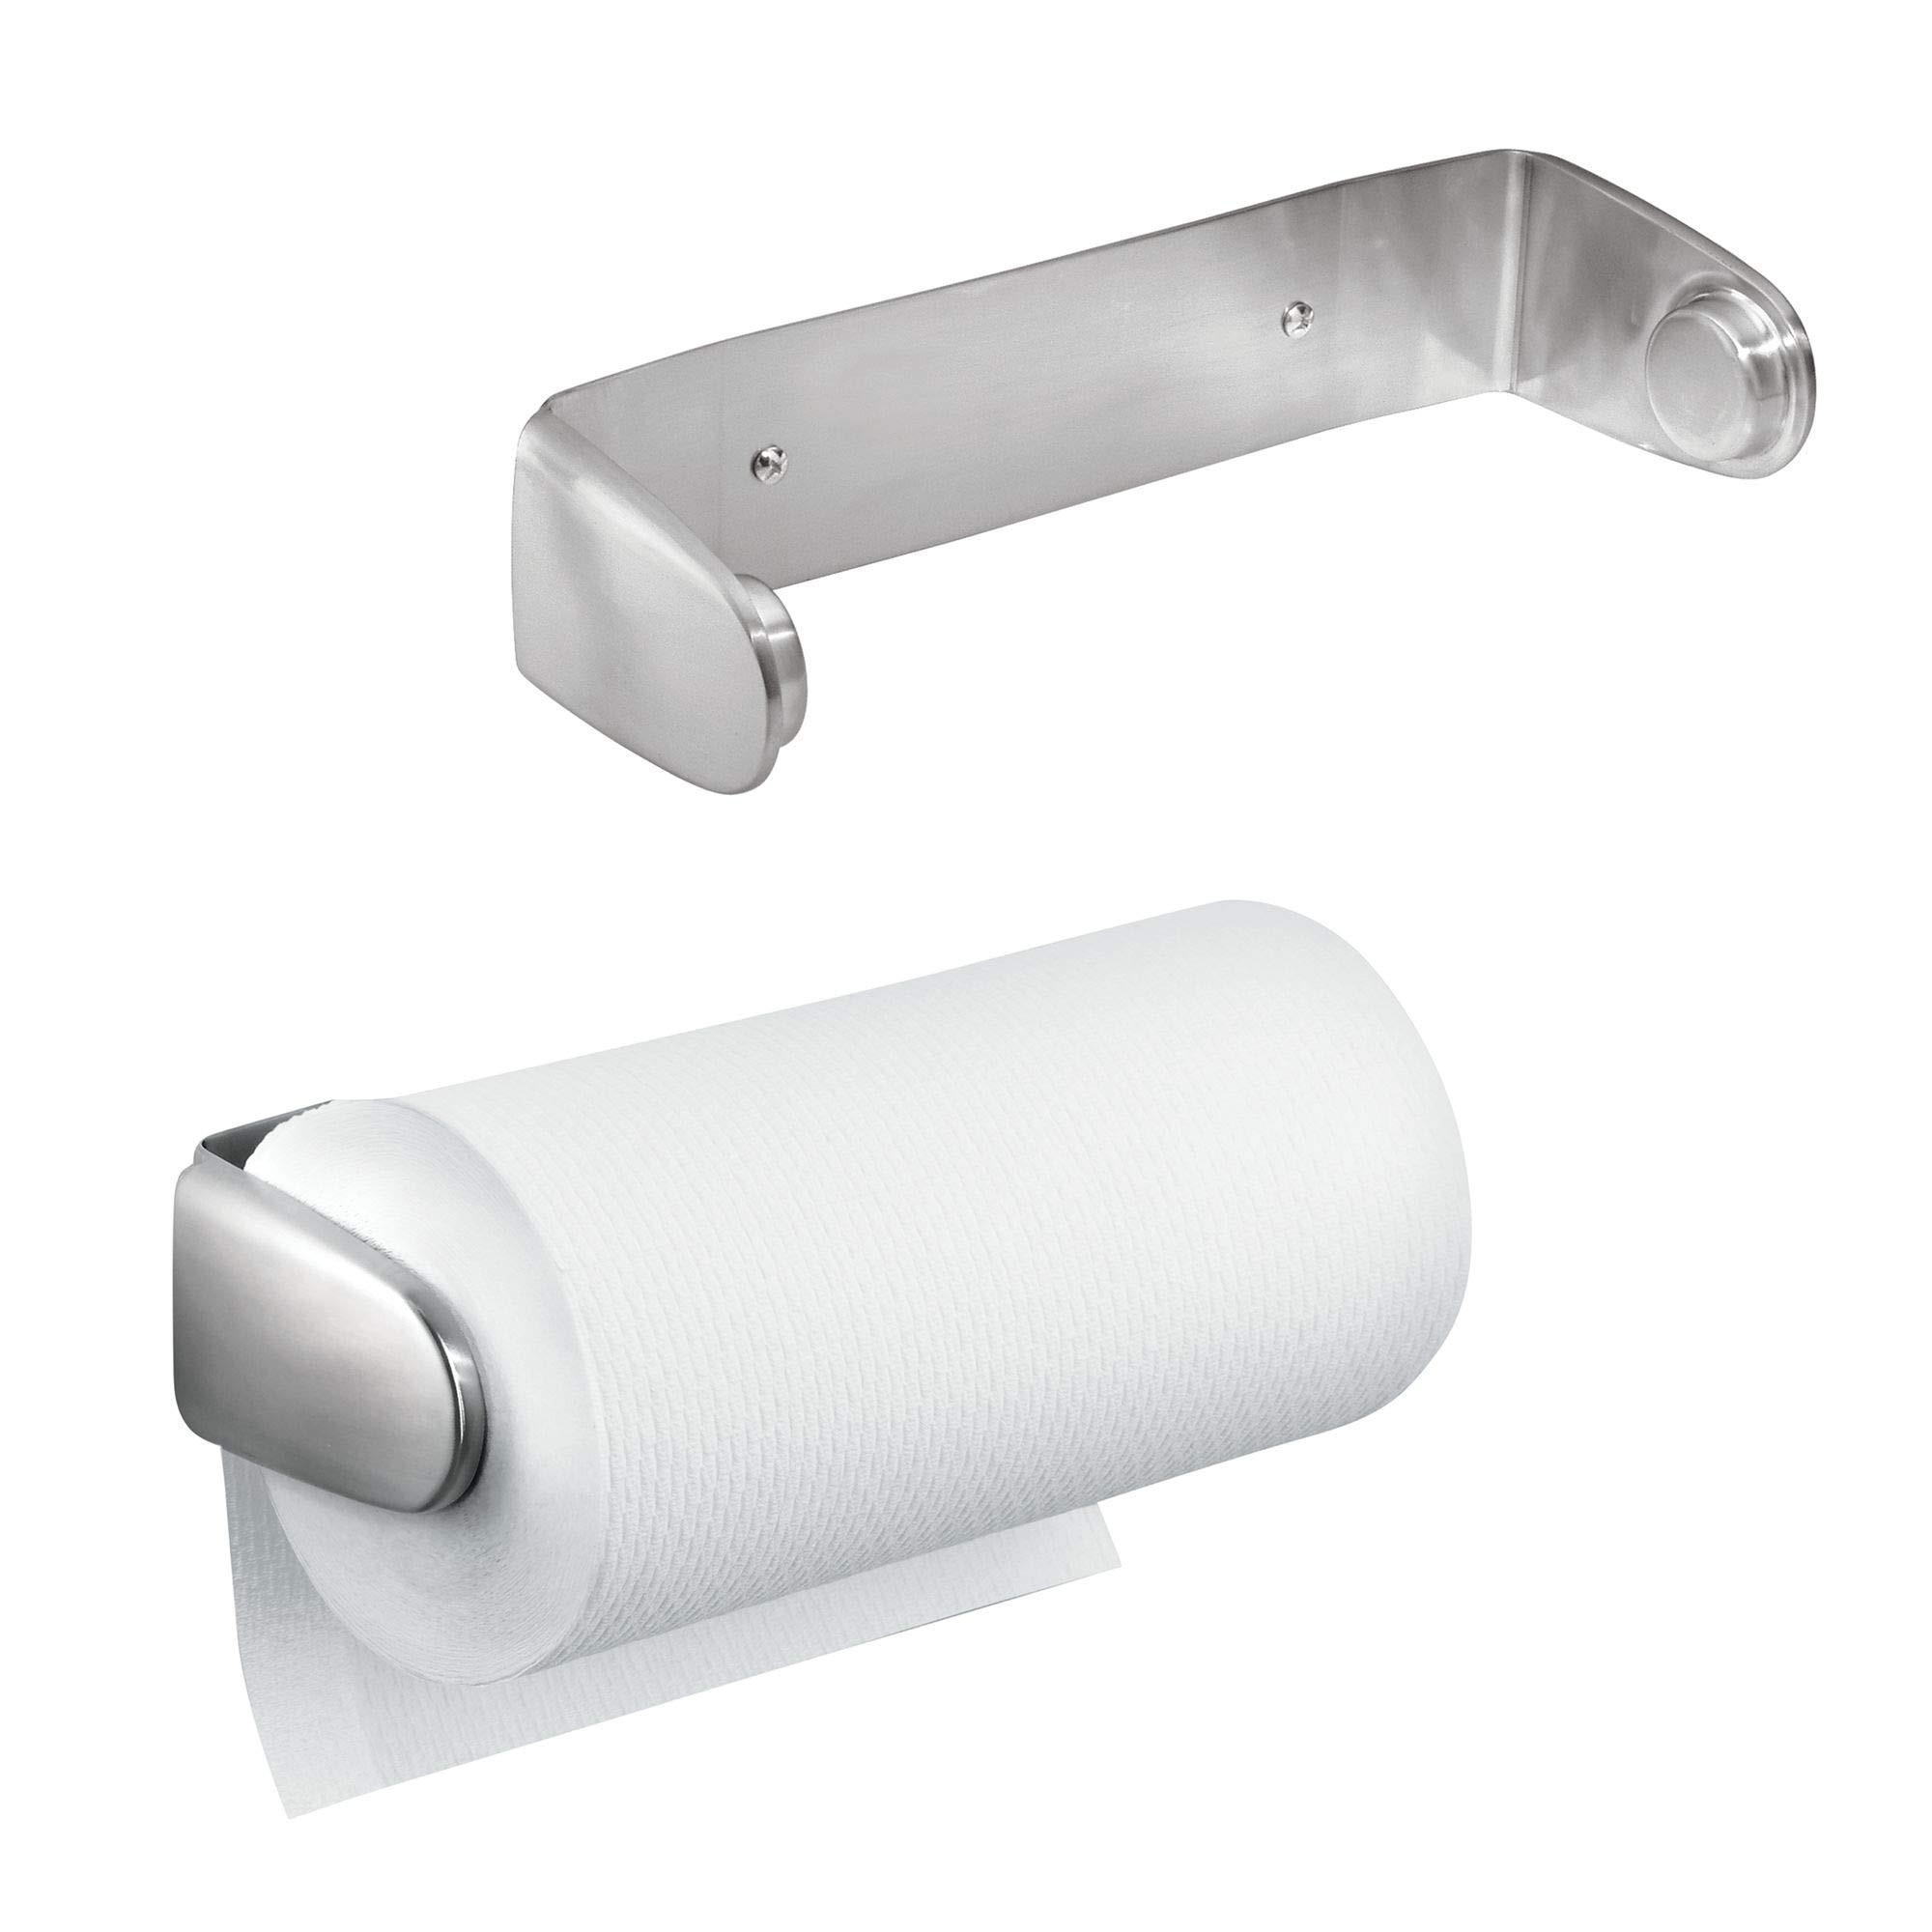 mDesign Wall Mount Paper Towel Holder & Dispenser, Mounts to Wall or Under Cabinet - for Kitchen, Pantry, Utility Room, Laundry, Garage Storage - Holds Jumbo Rolls, Pack of 2, Brushed Stainless Steel